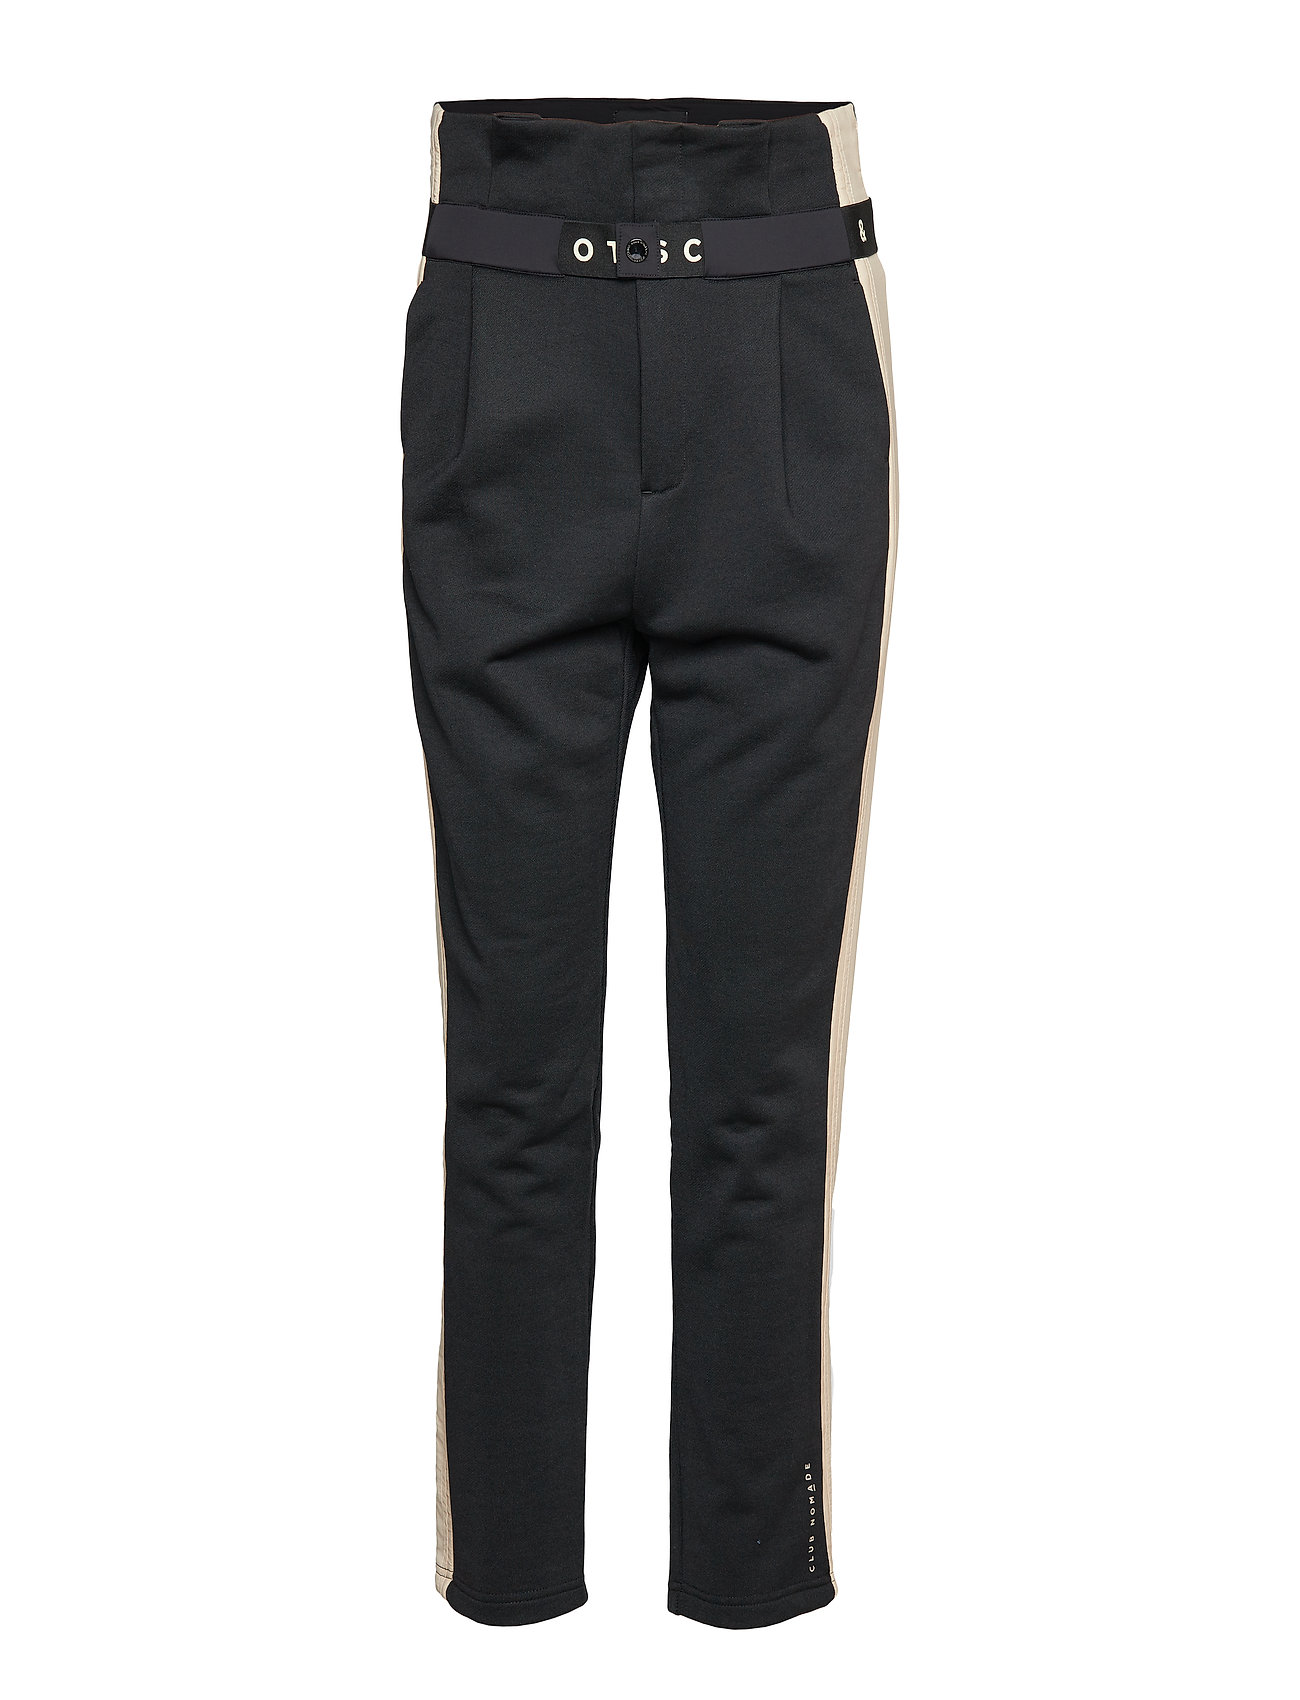 Scotch & Soda Club Nomade high waisted jogger - BLACK